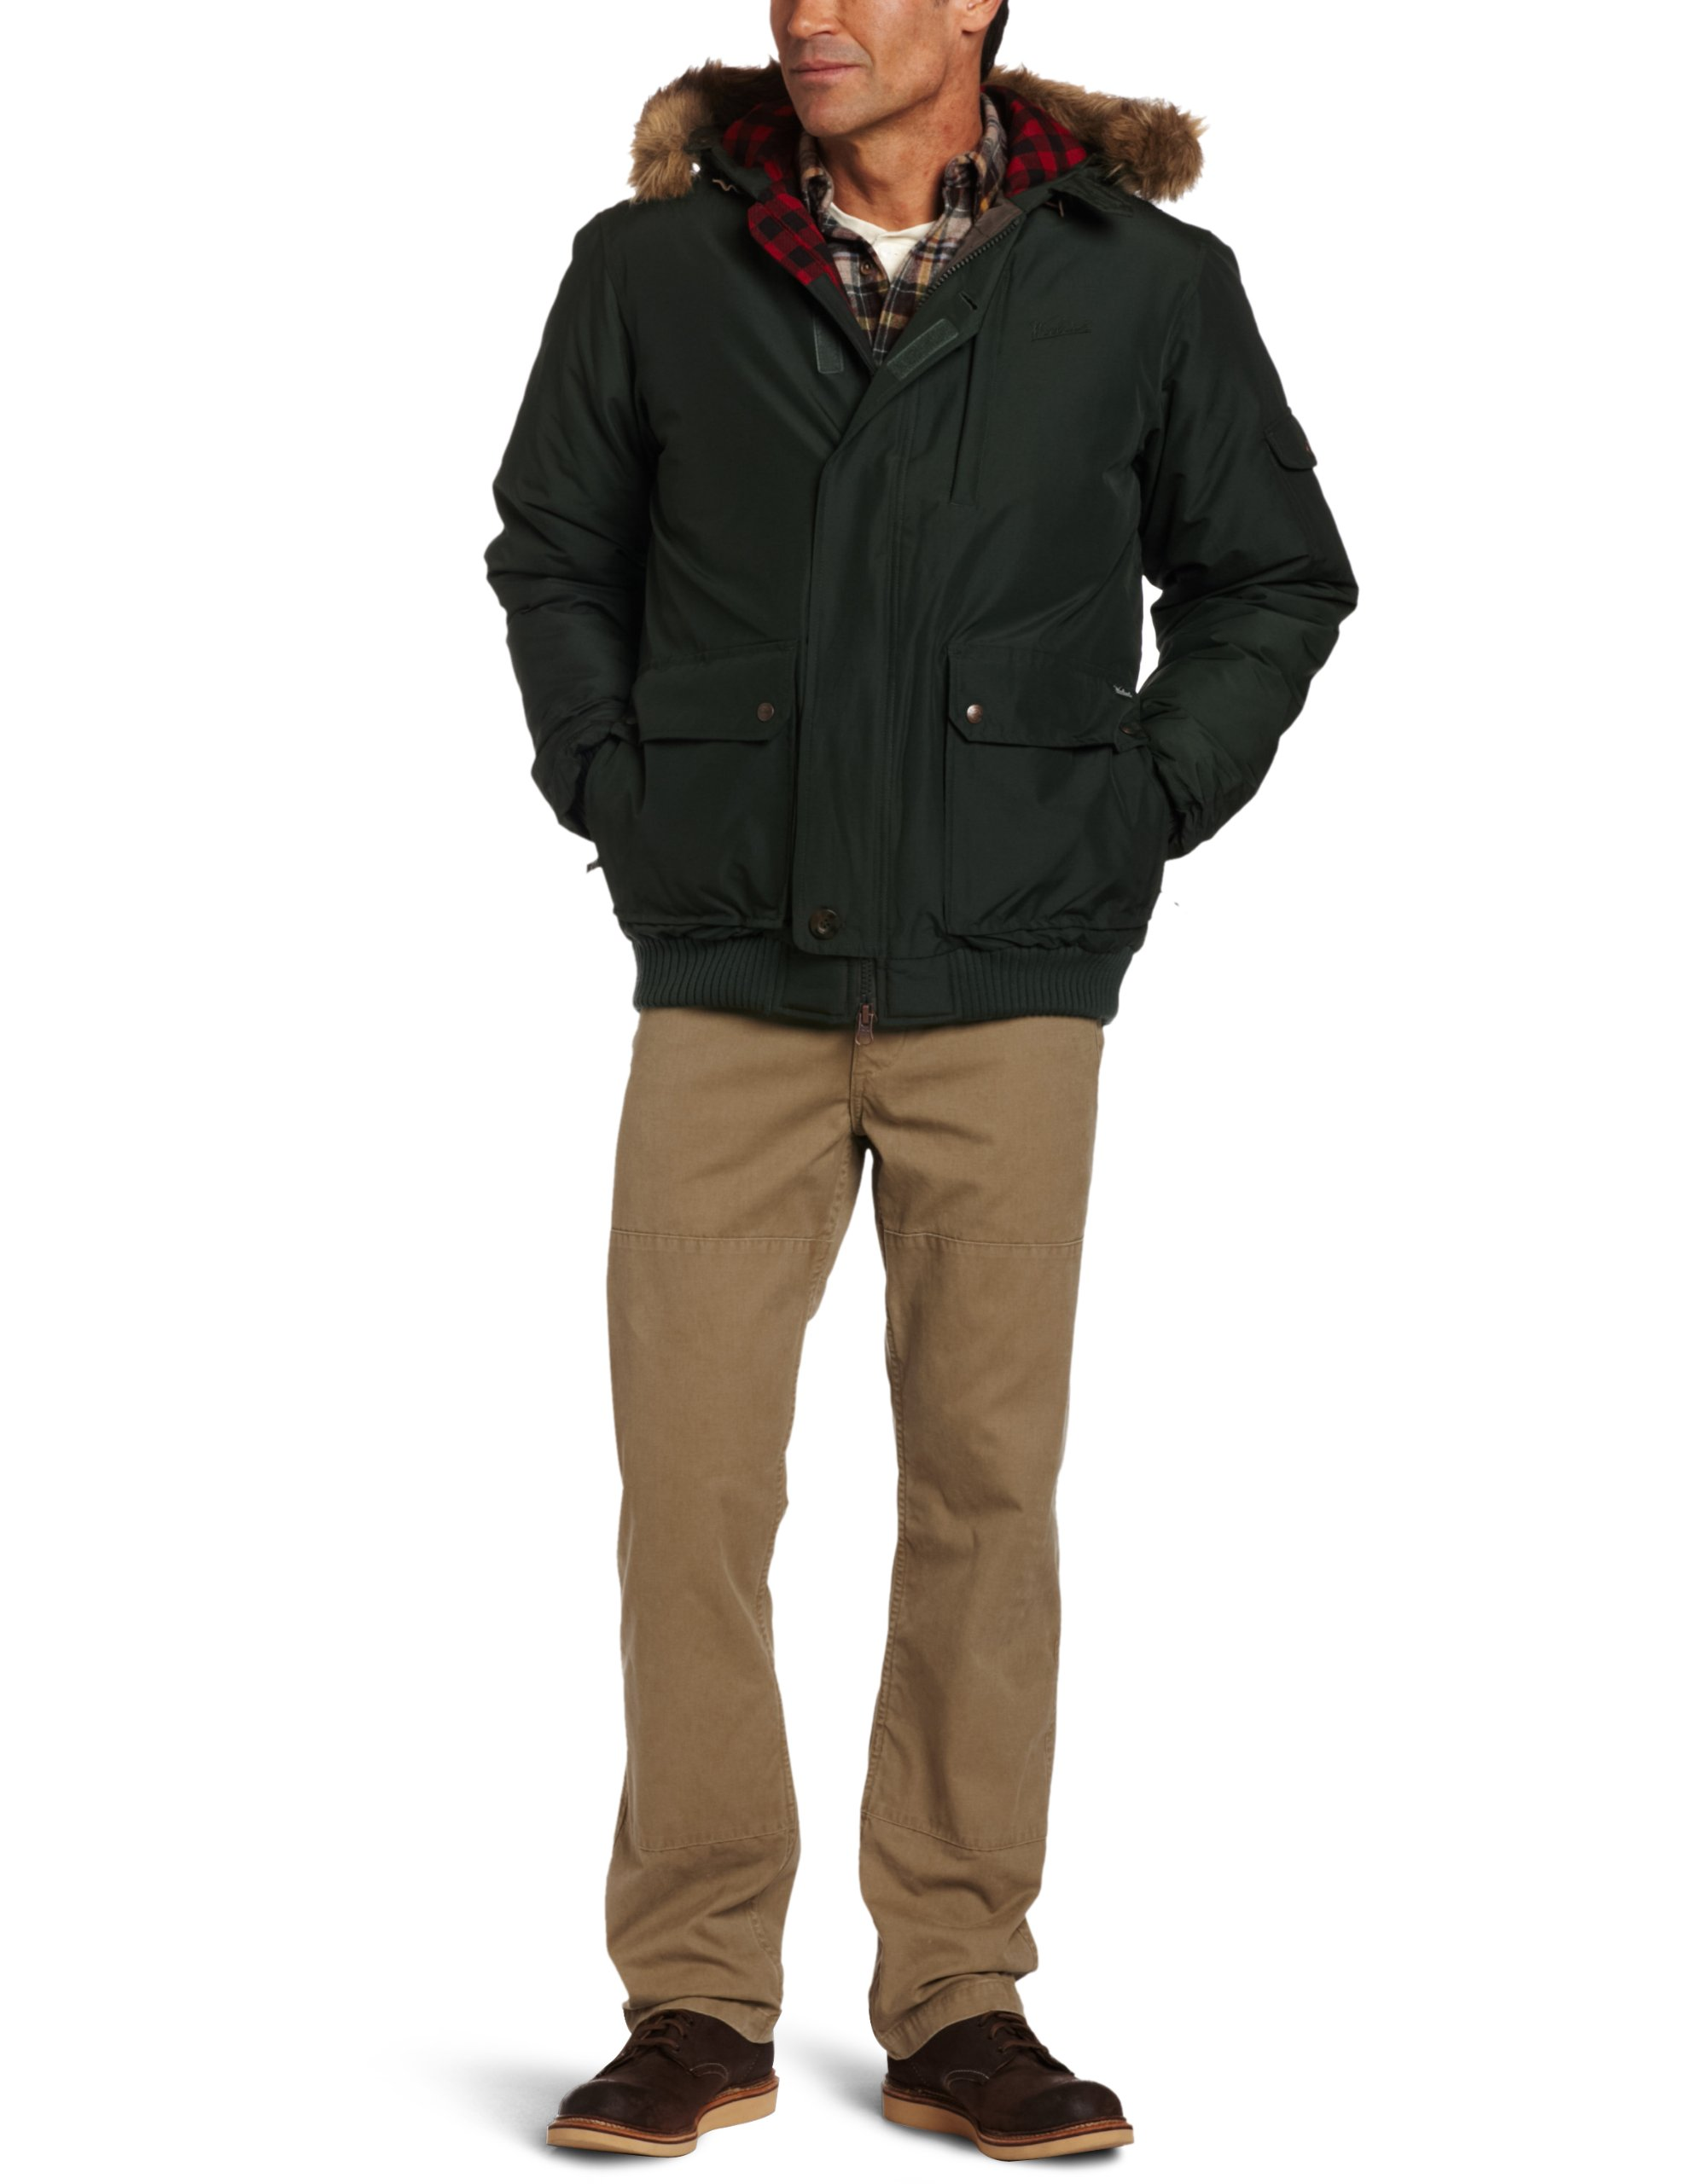 Woolrich Men's Rescue Jacket, Elm, X-Large